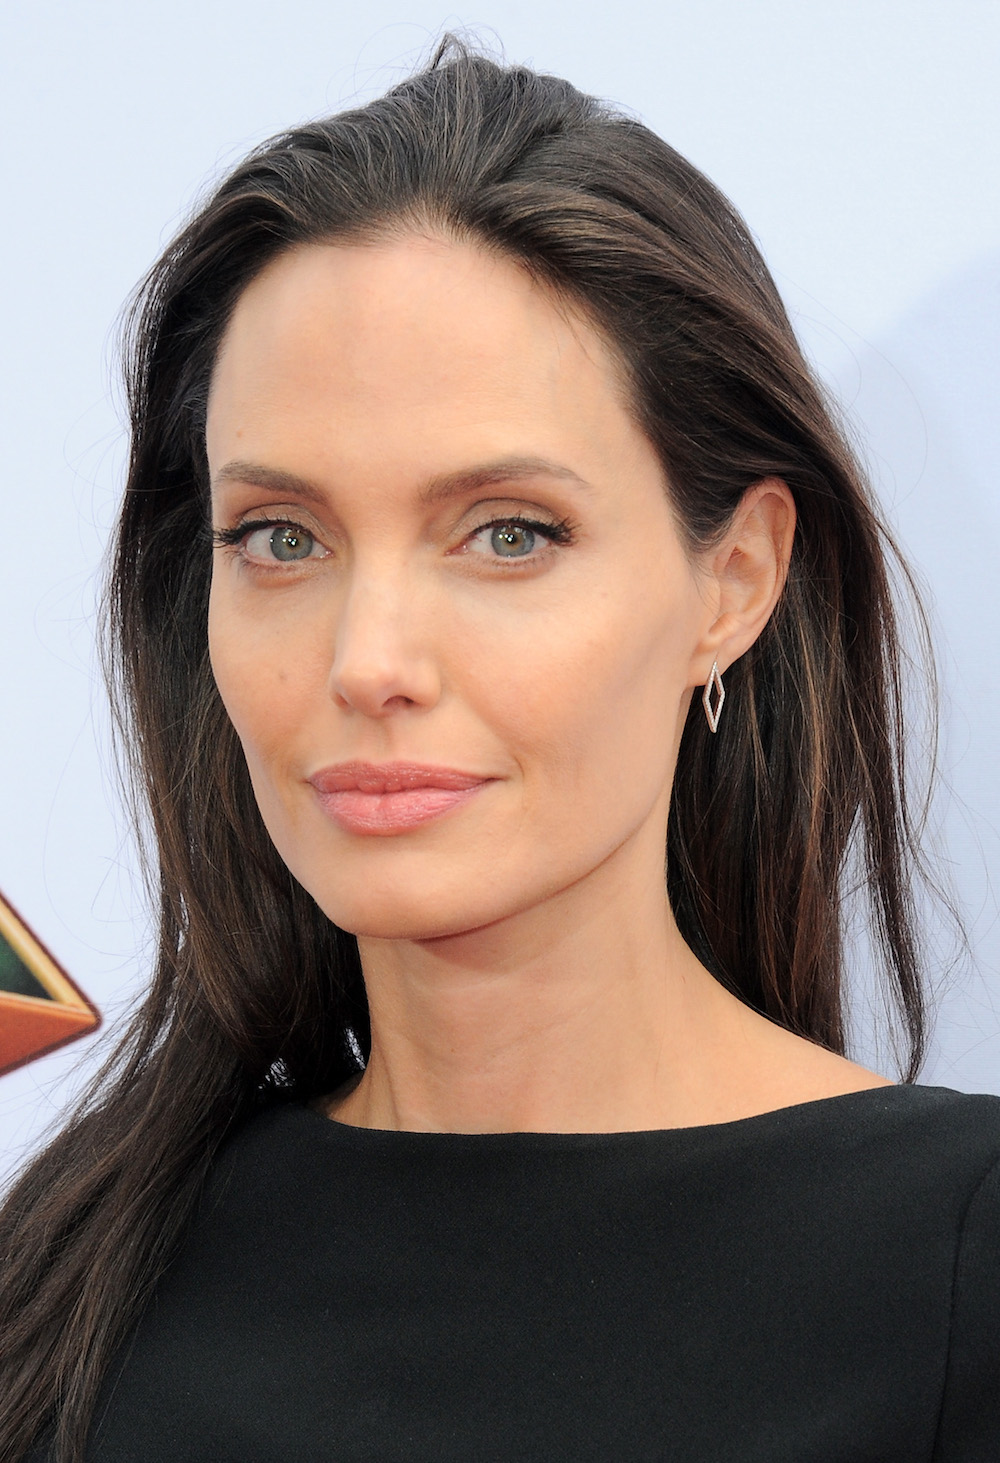 Angelina Jolie is the new face of Guerlain's fragrance for women, and she's donating her salary to charity